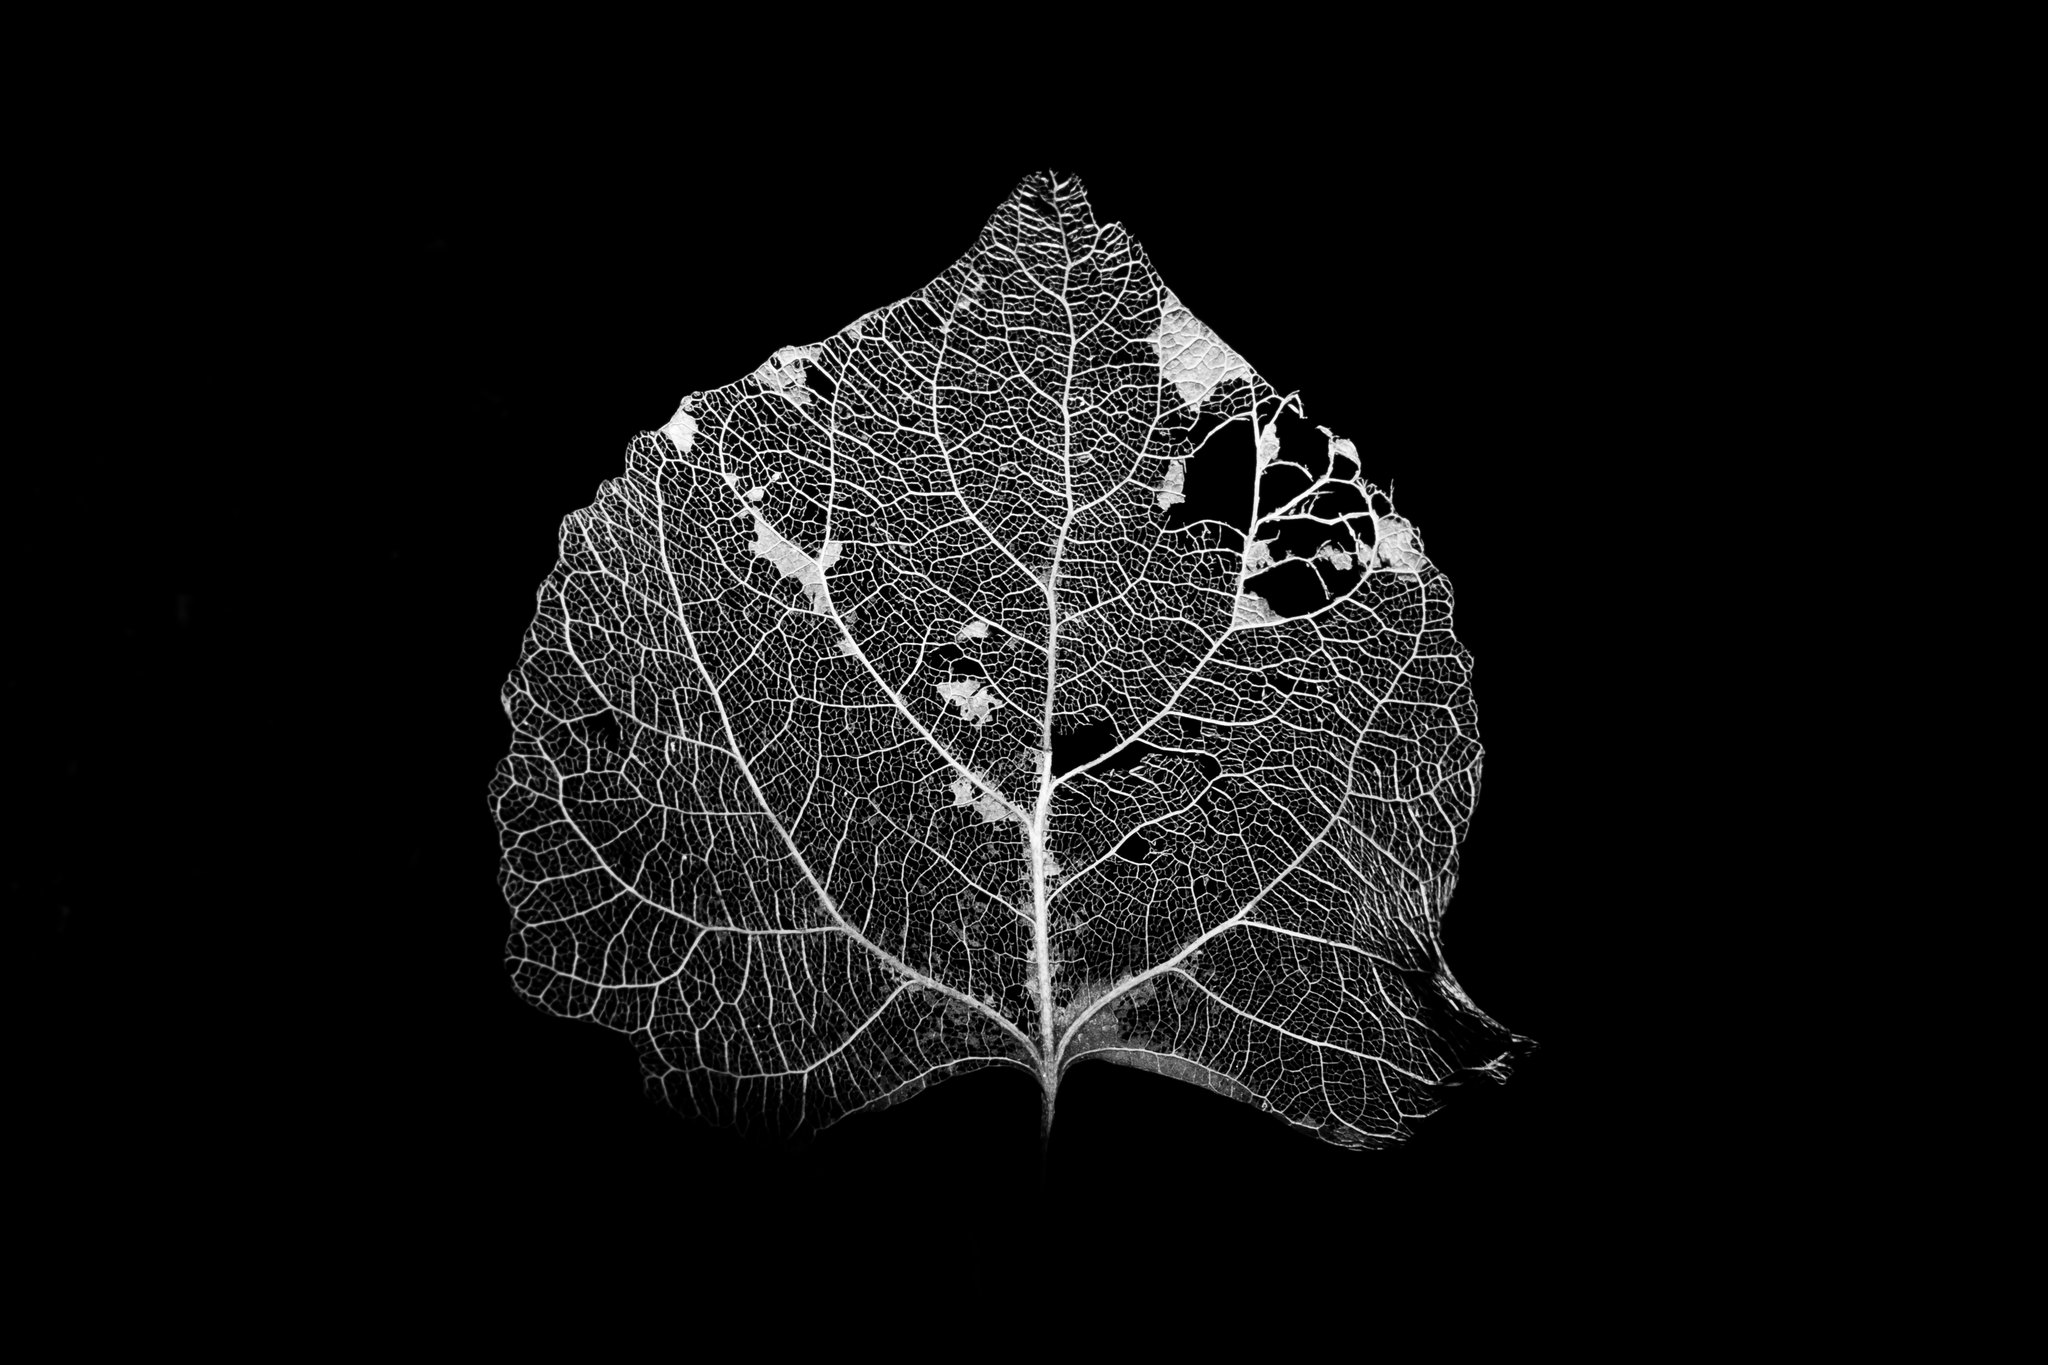 Decayed Aspen Leaf in B&W